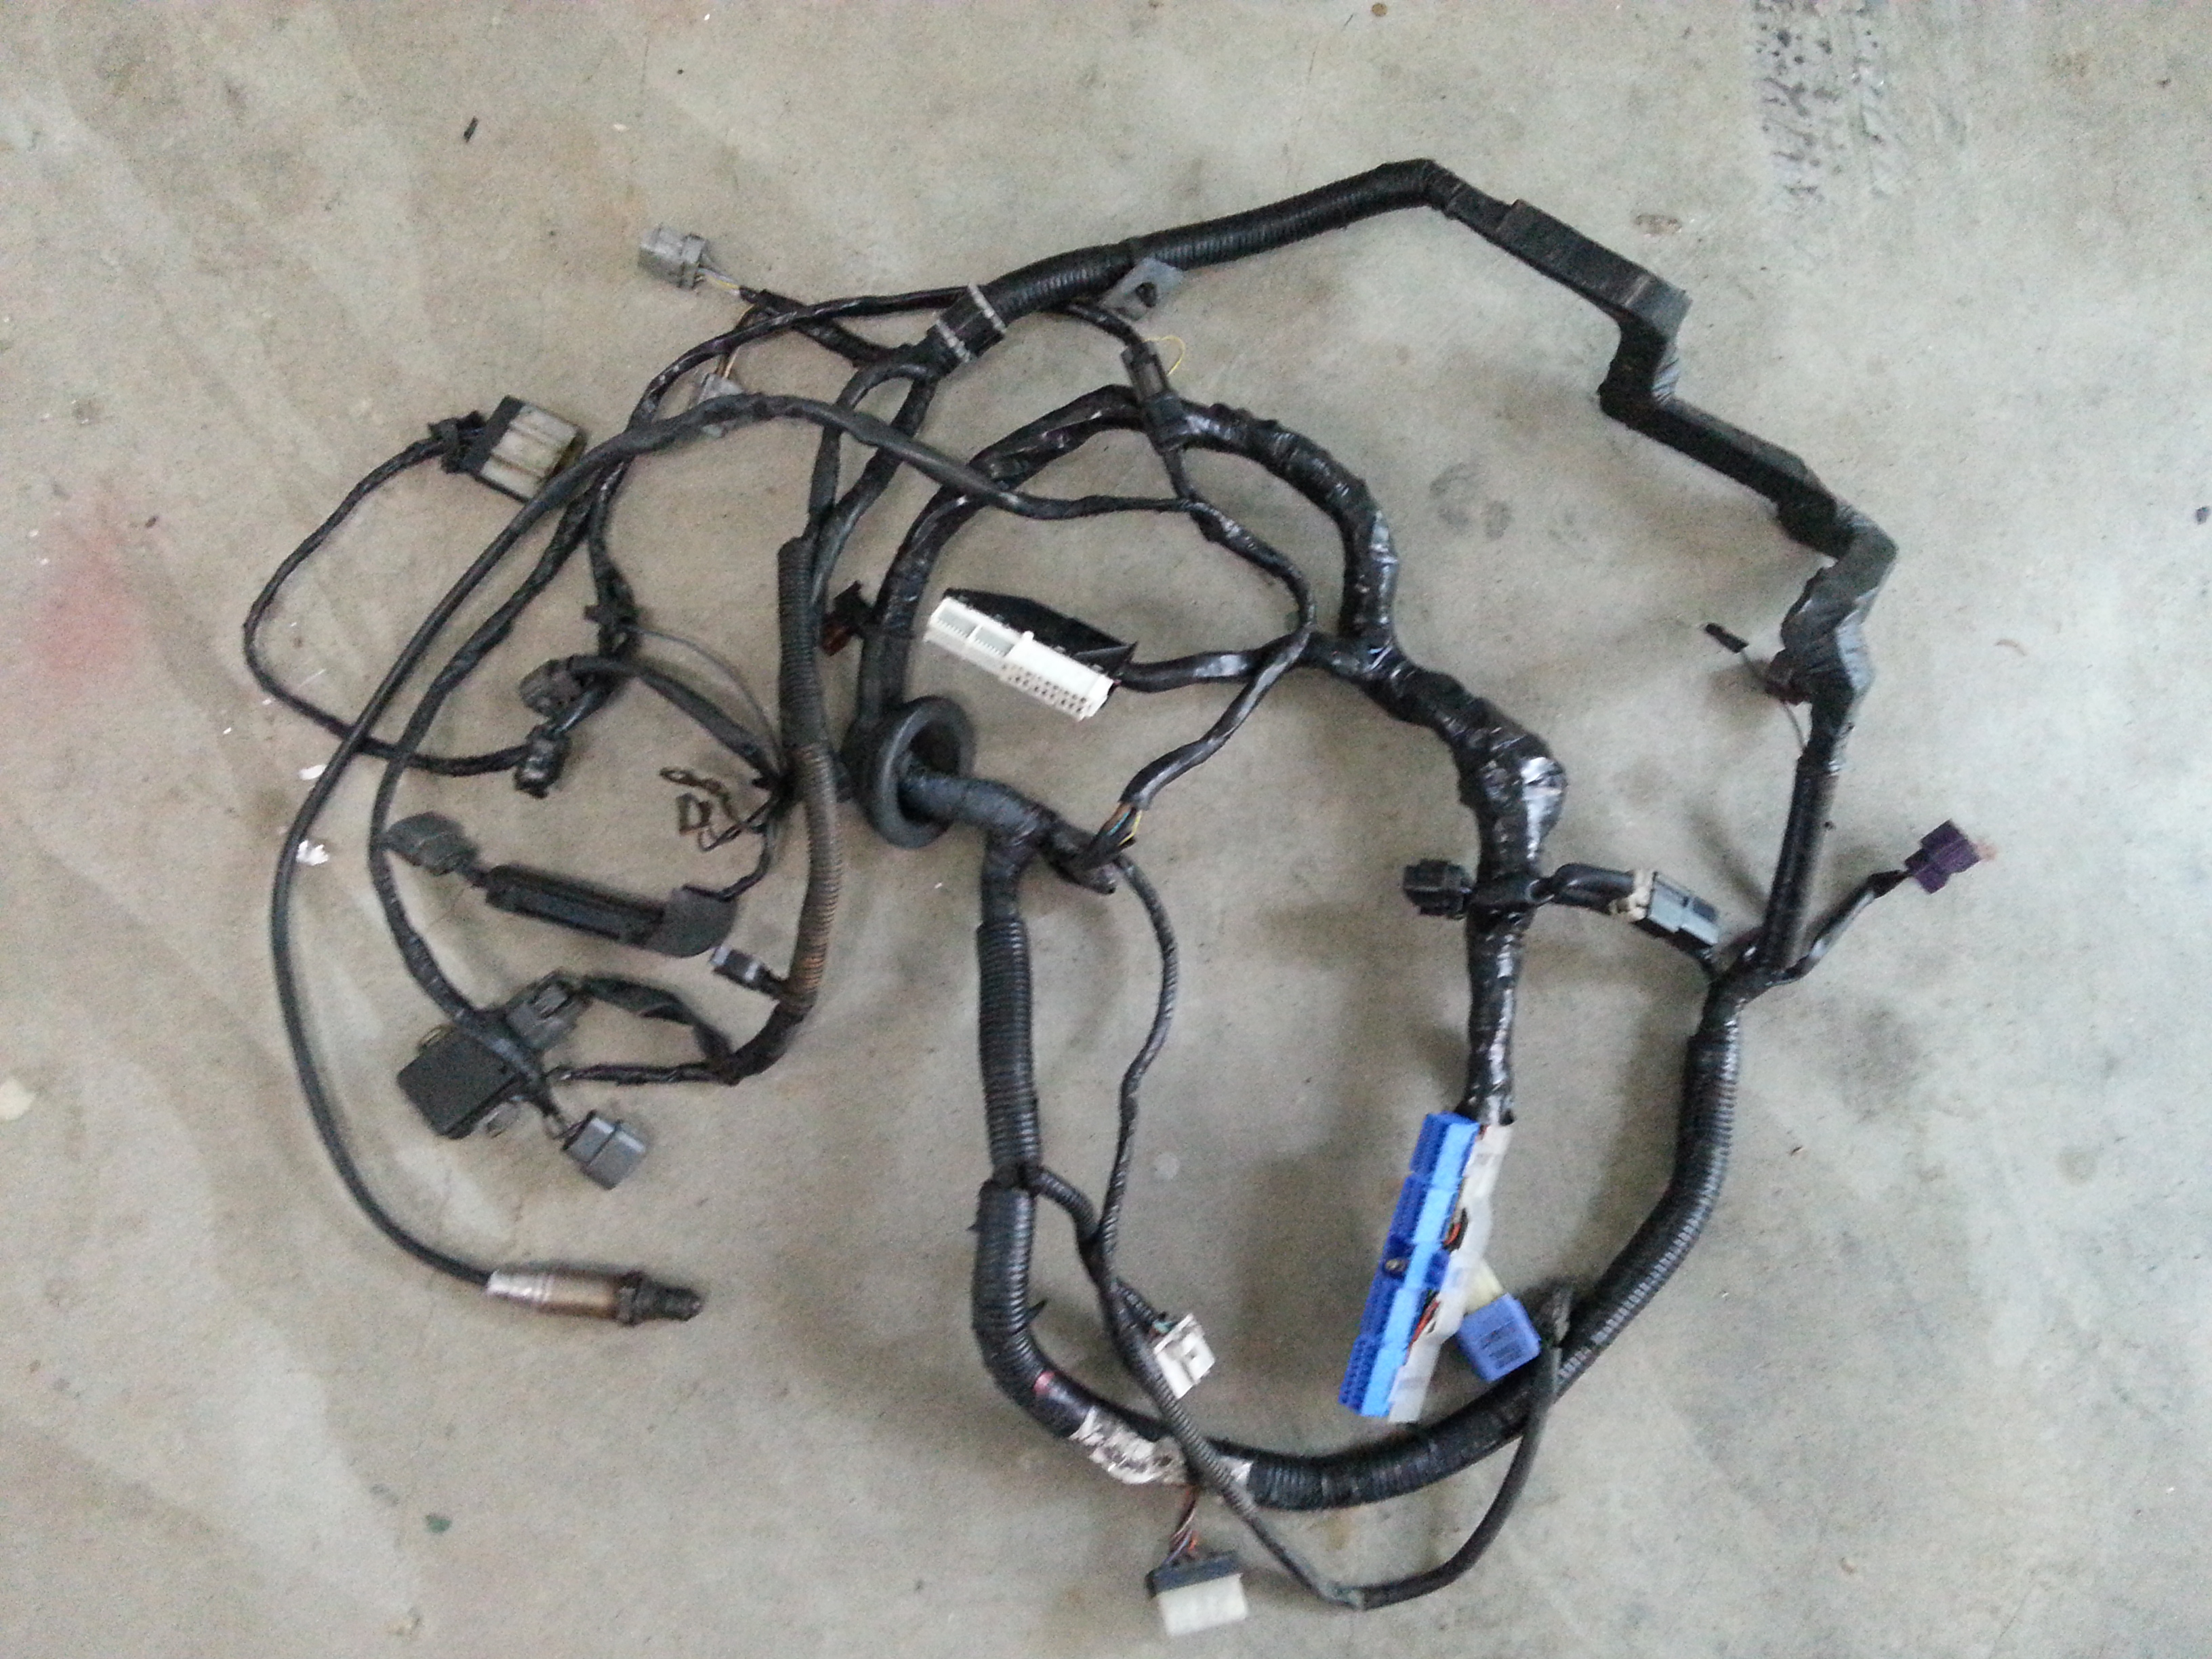 r33 series 2 wiring harness car parts nsw northern rivers 2185703